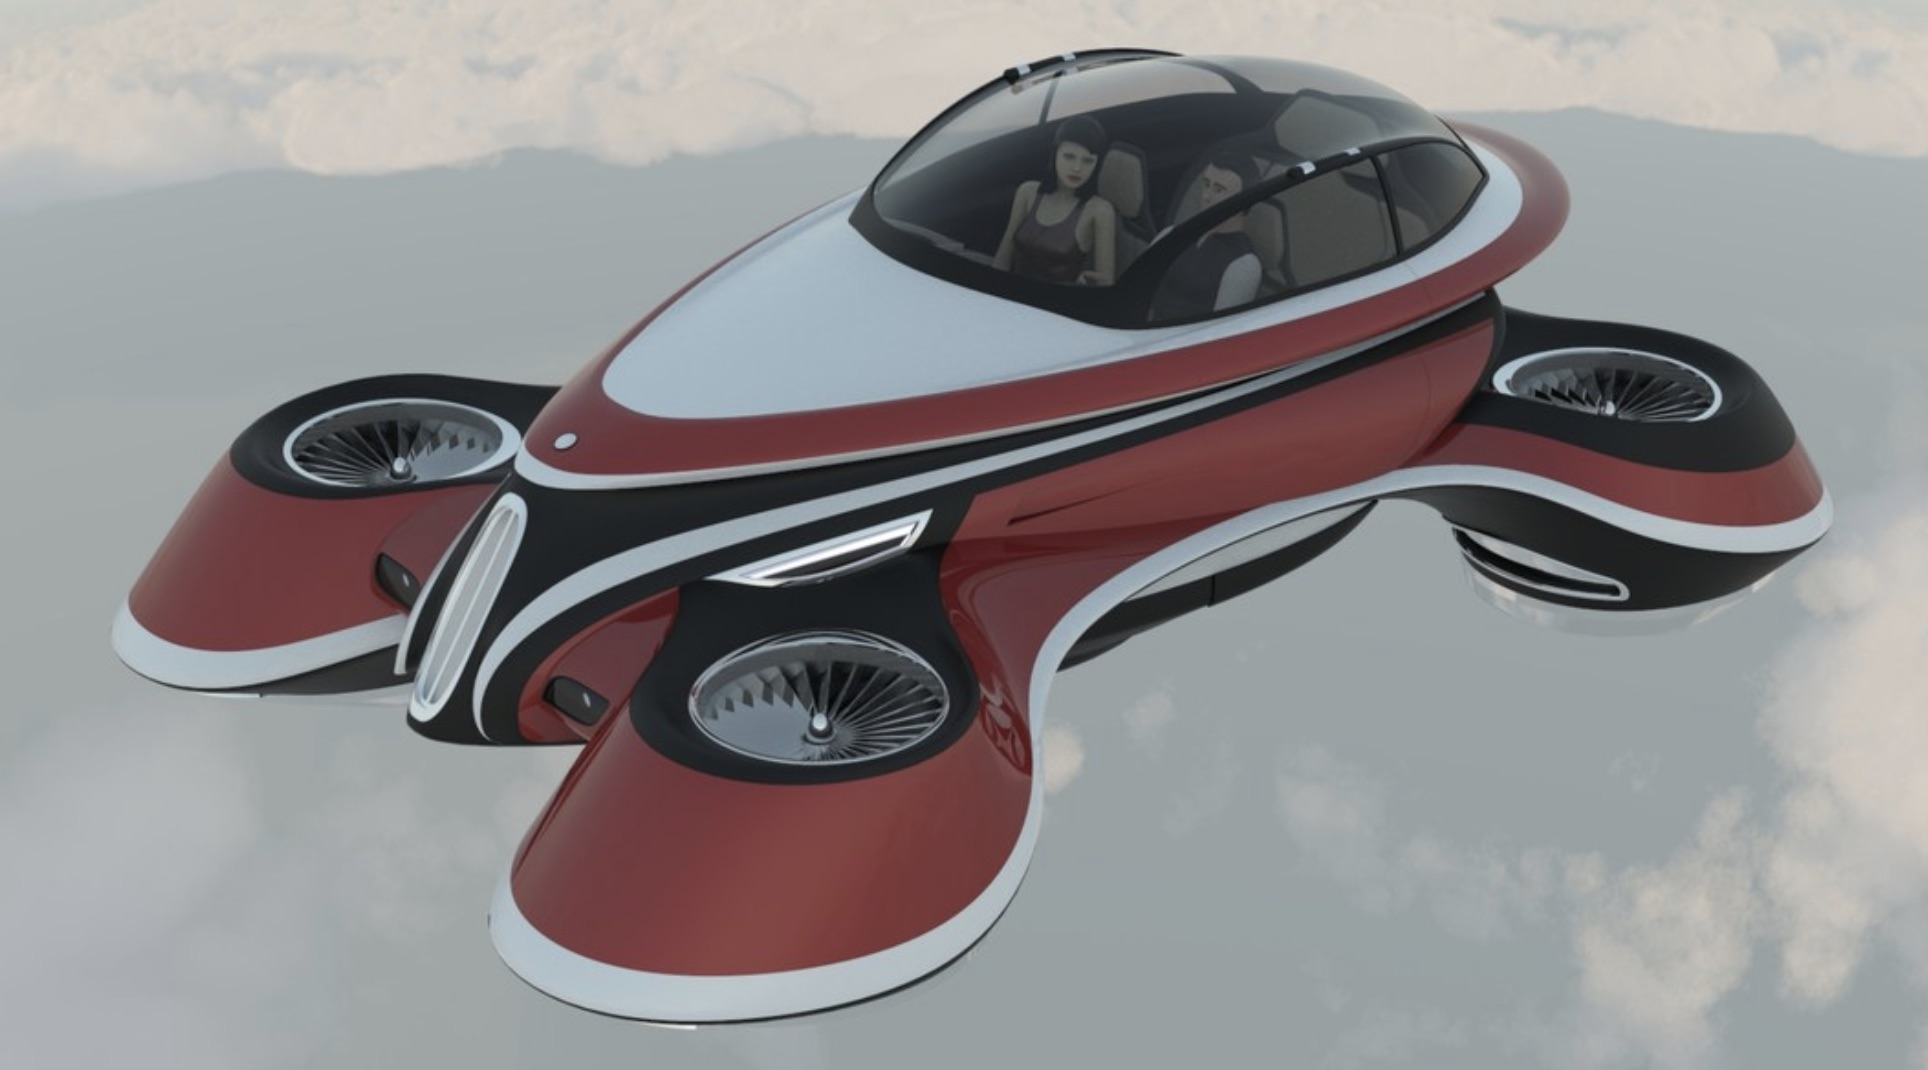 Italian Design Vw Italian Firm Lazzarini Design Shows Retro Flying Car Concept